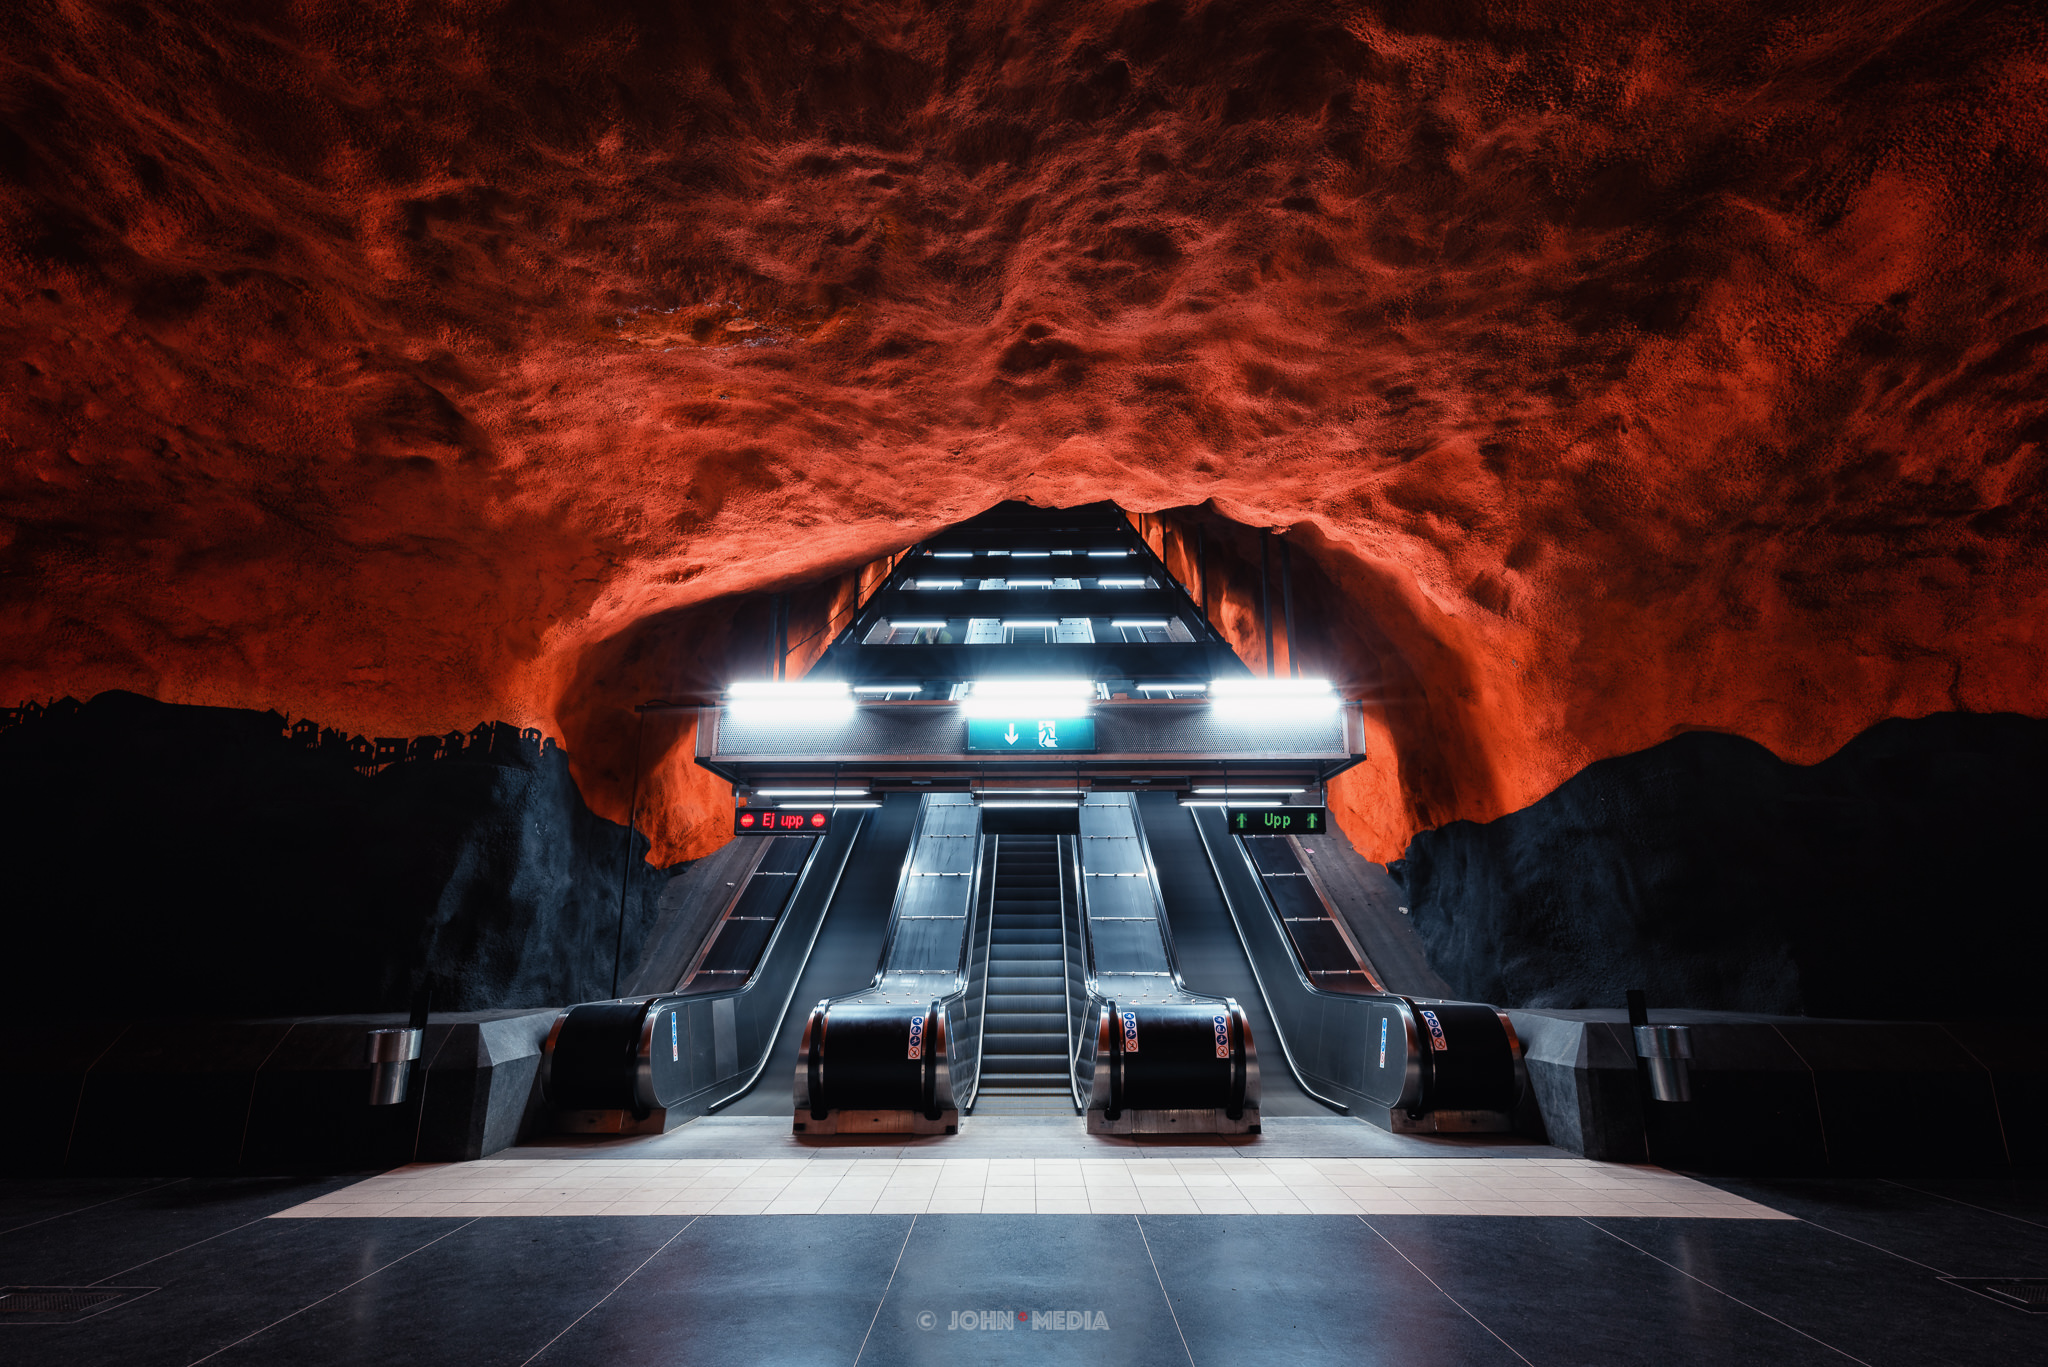 Stockholm subway to hell